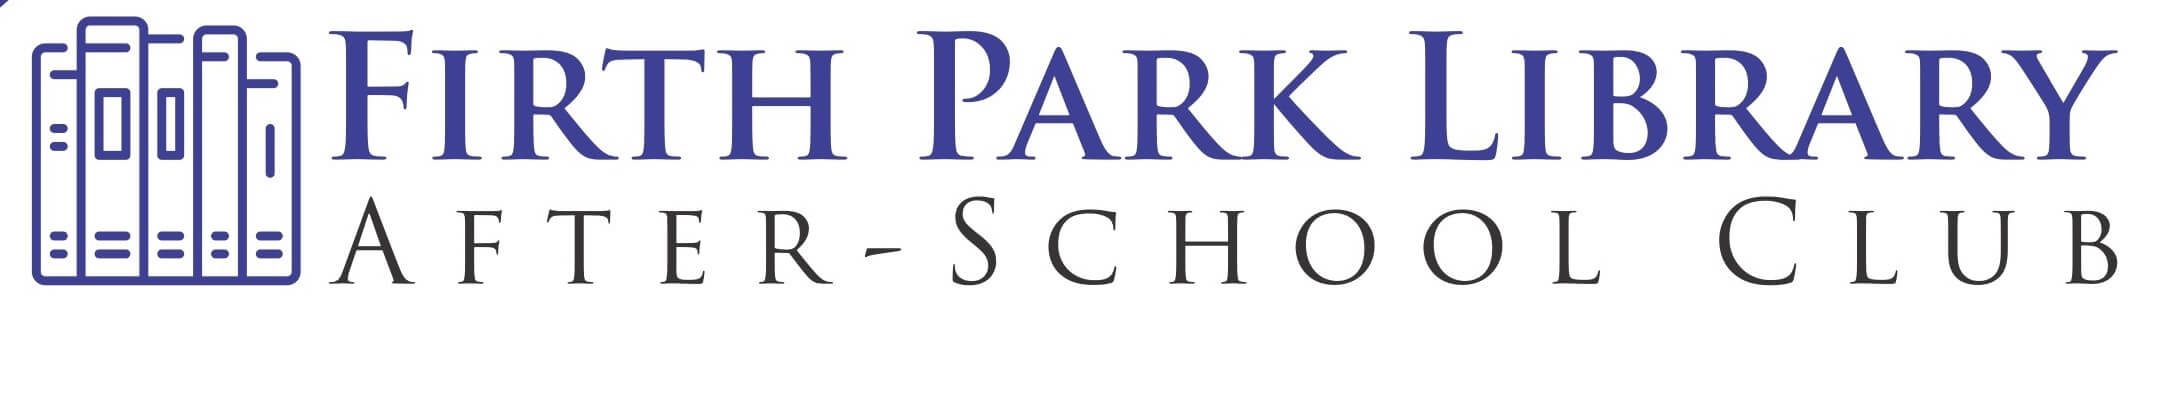 Firth Park Library After-School Club